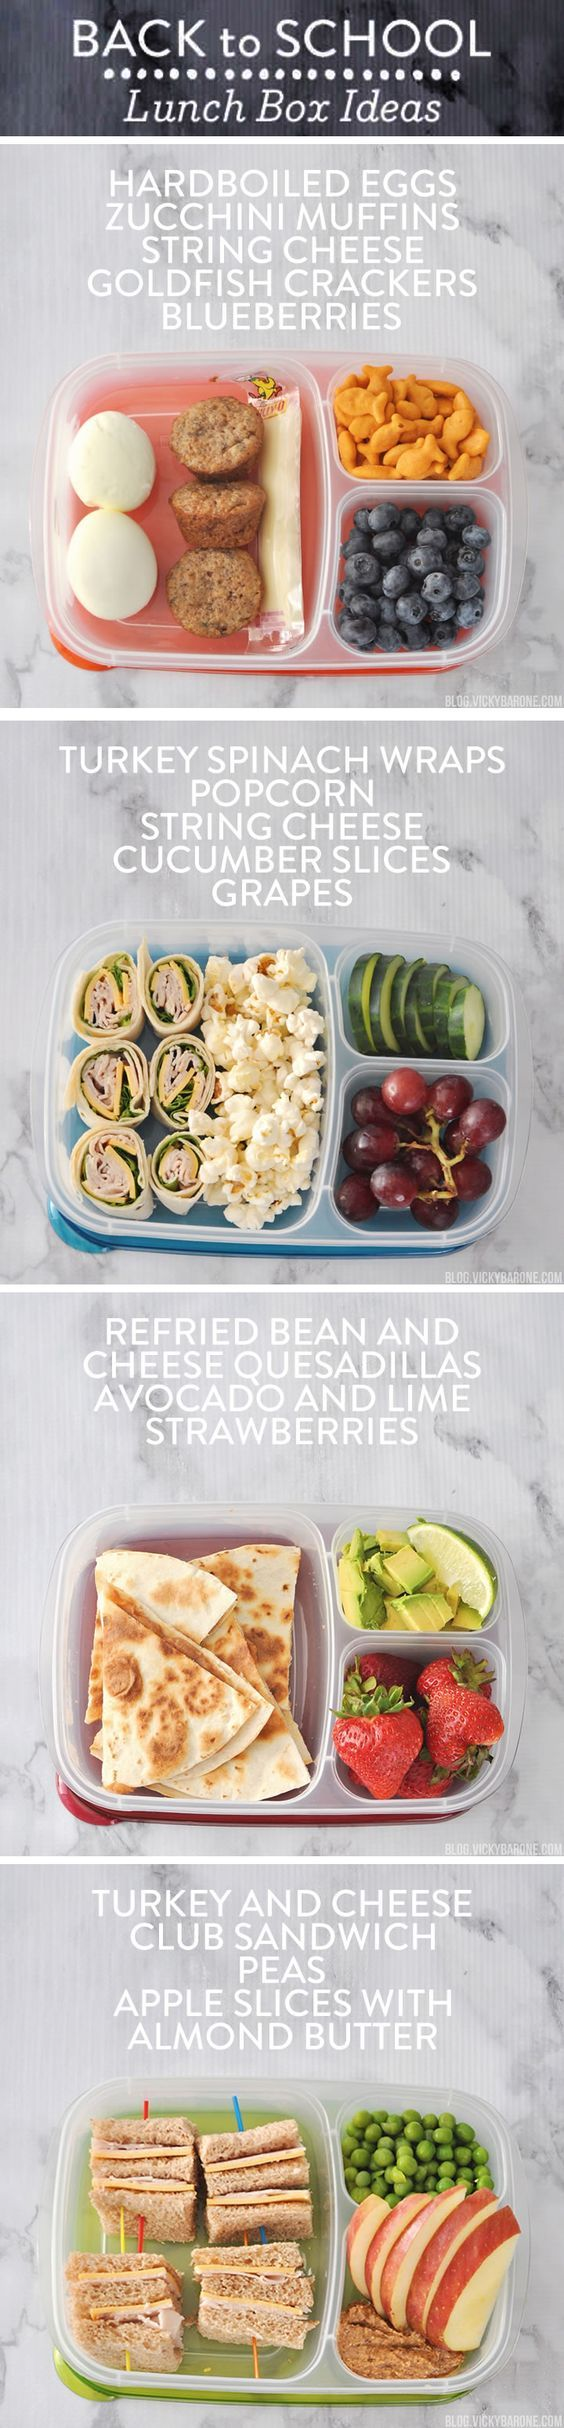 the 8 best images about pack a lunch on pinterest easy lunch ideas